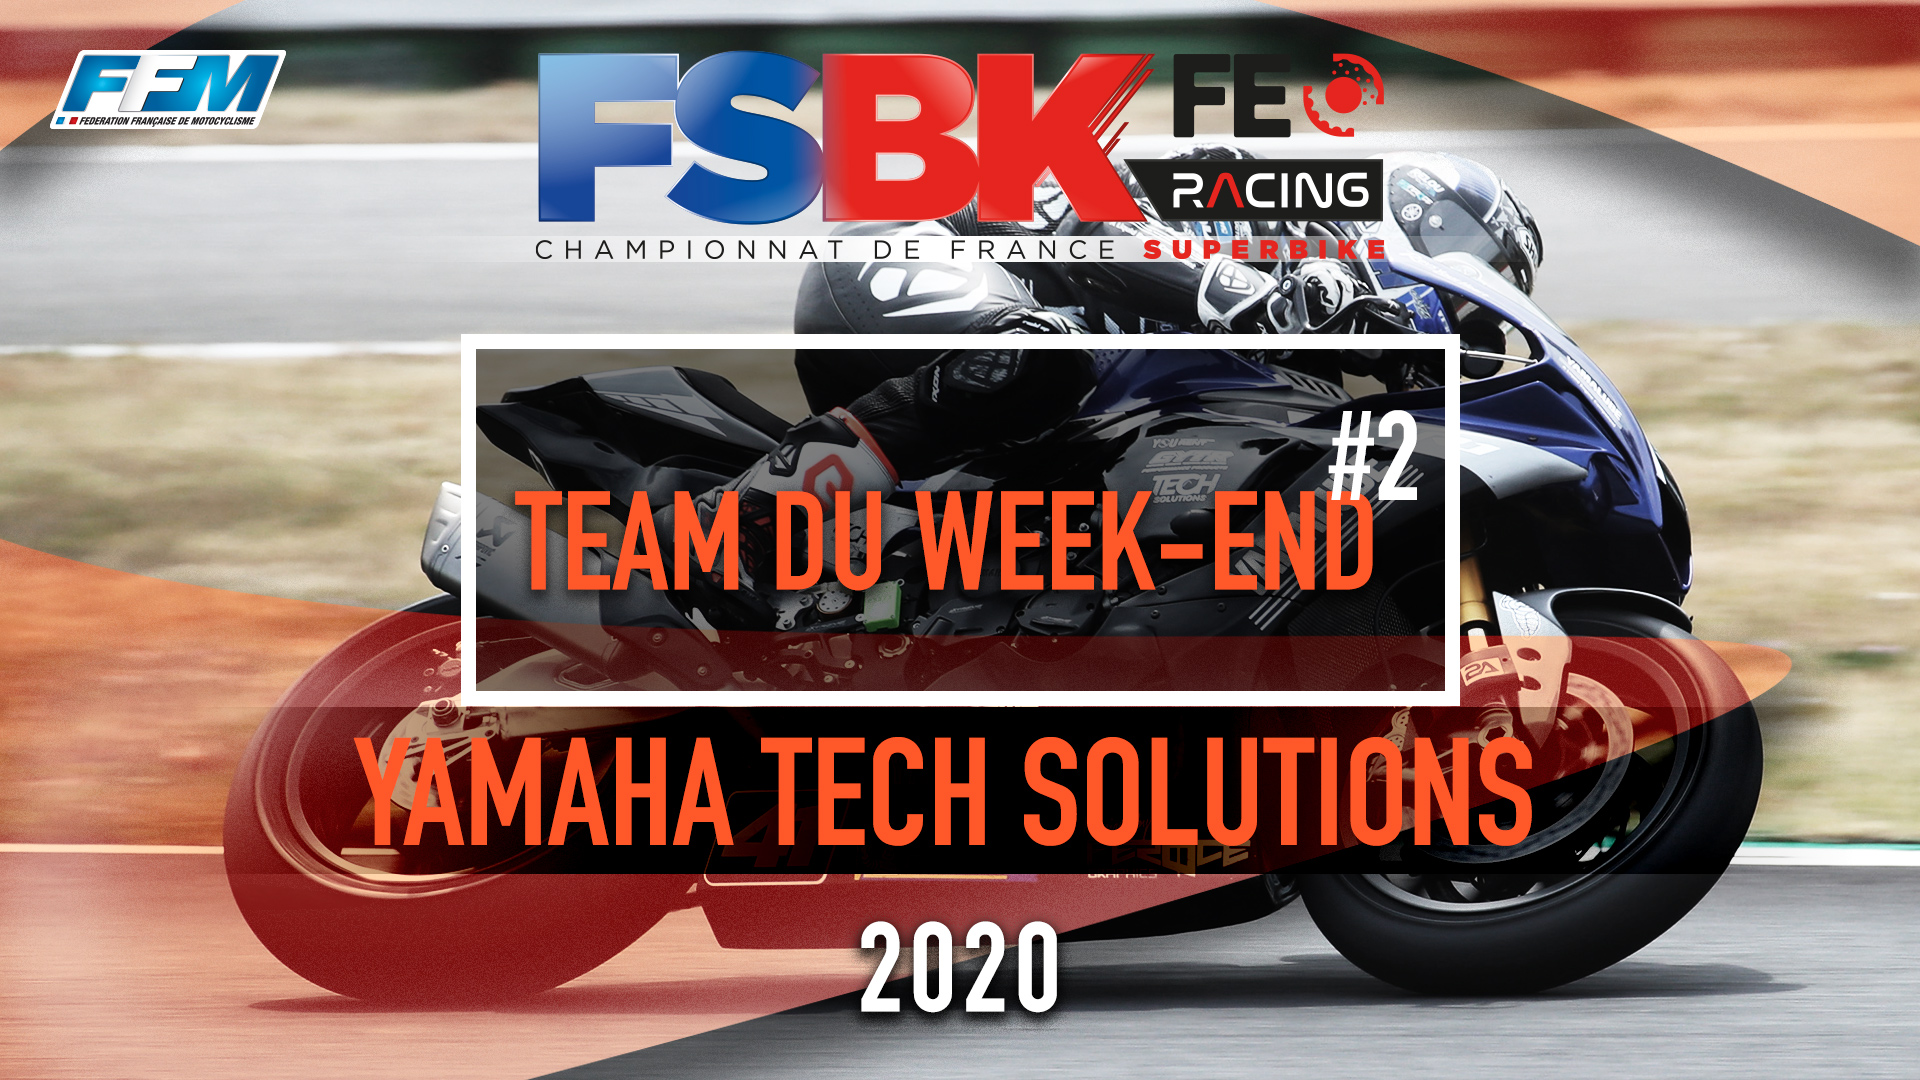 // LE TEAM DU WEEKEND – YAMAHA TECH SOLUTIONS //